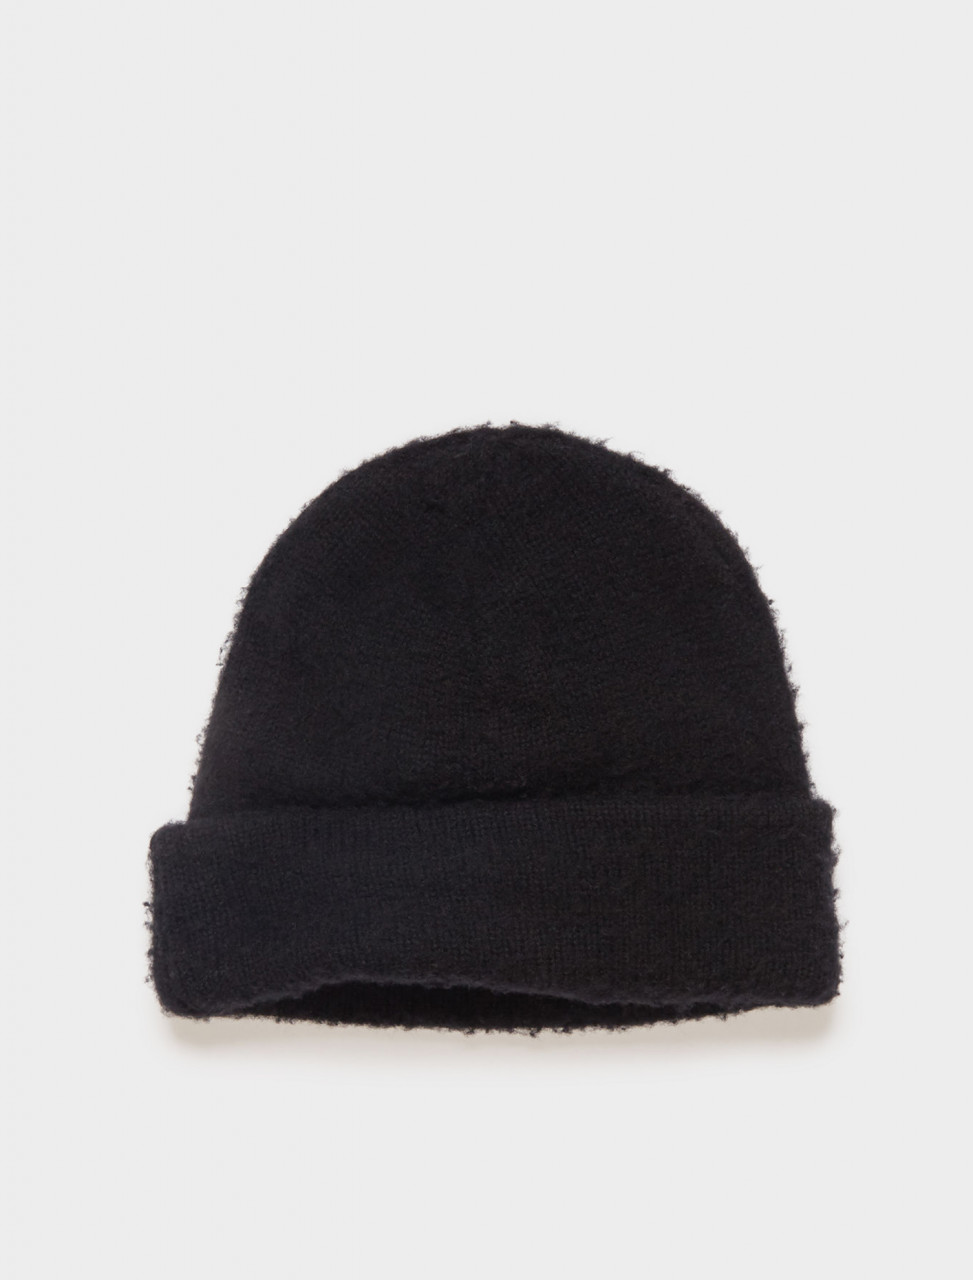 110-C40111-900 ACNE STUDIOS PILLED TEXTURE BEANIE BLACK